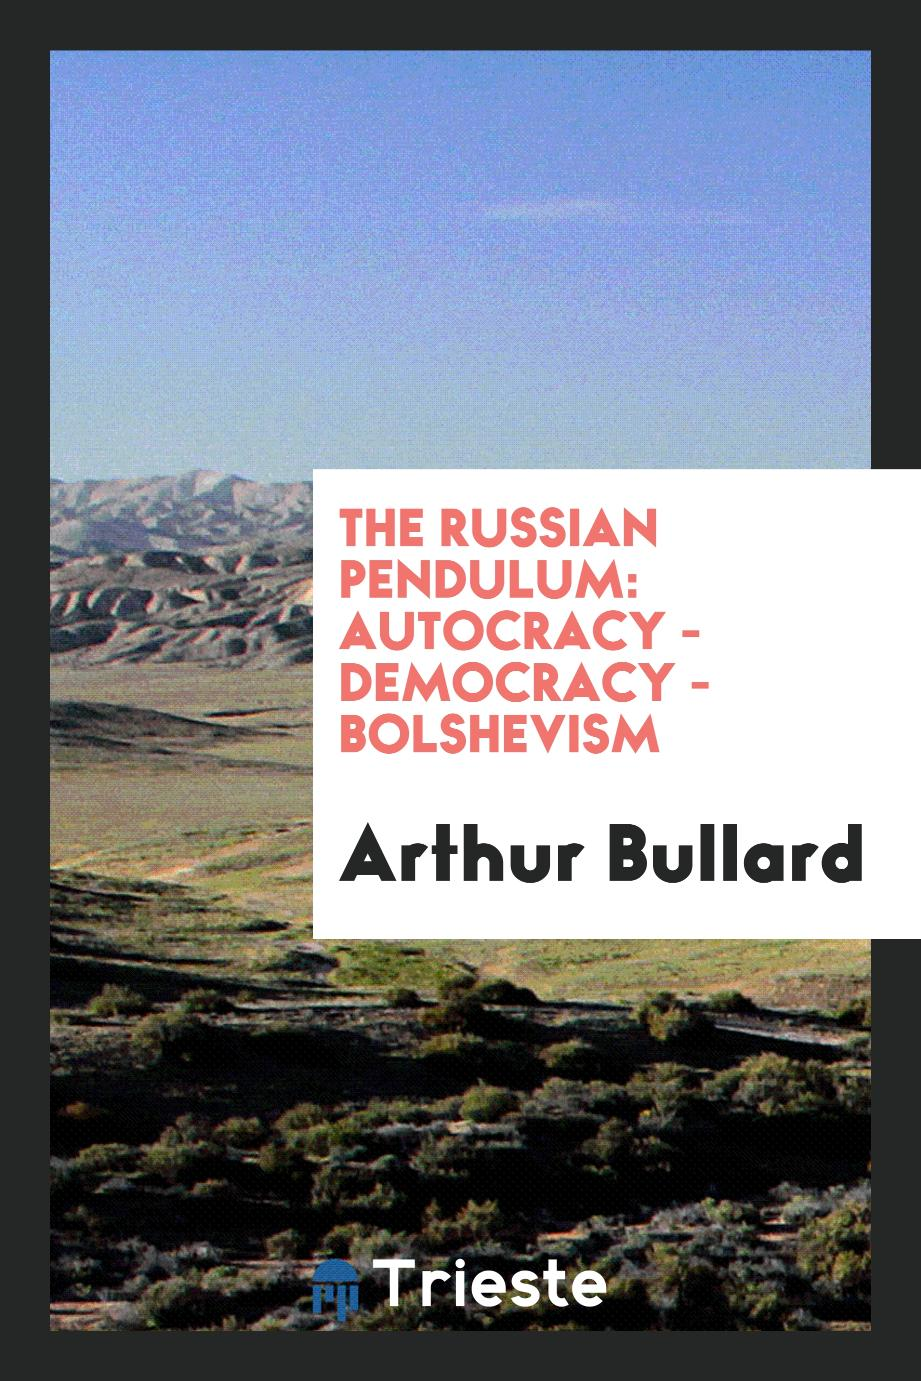 The Russian pendulum: autocracy - democracy - bolshevism